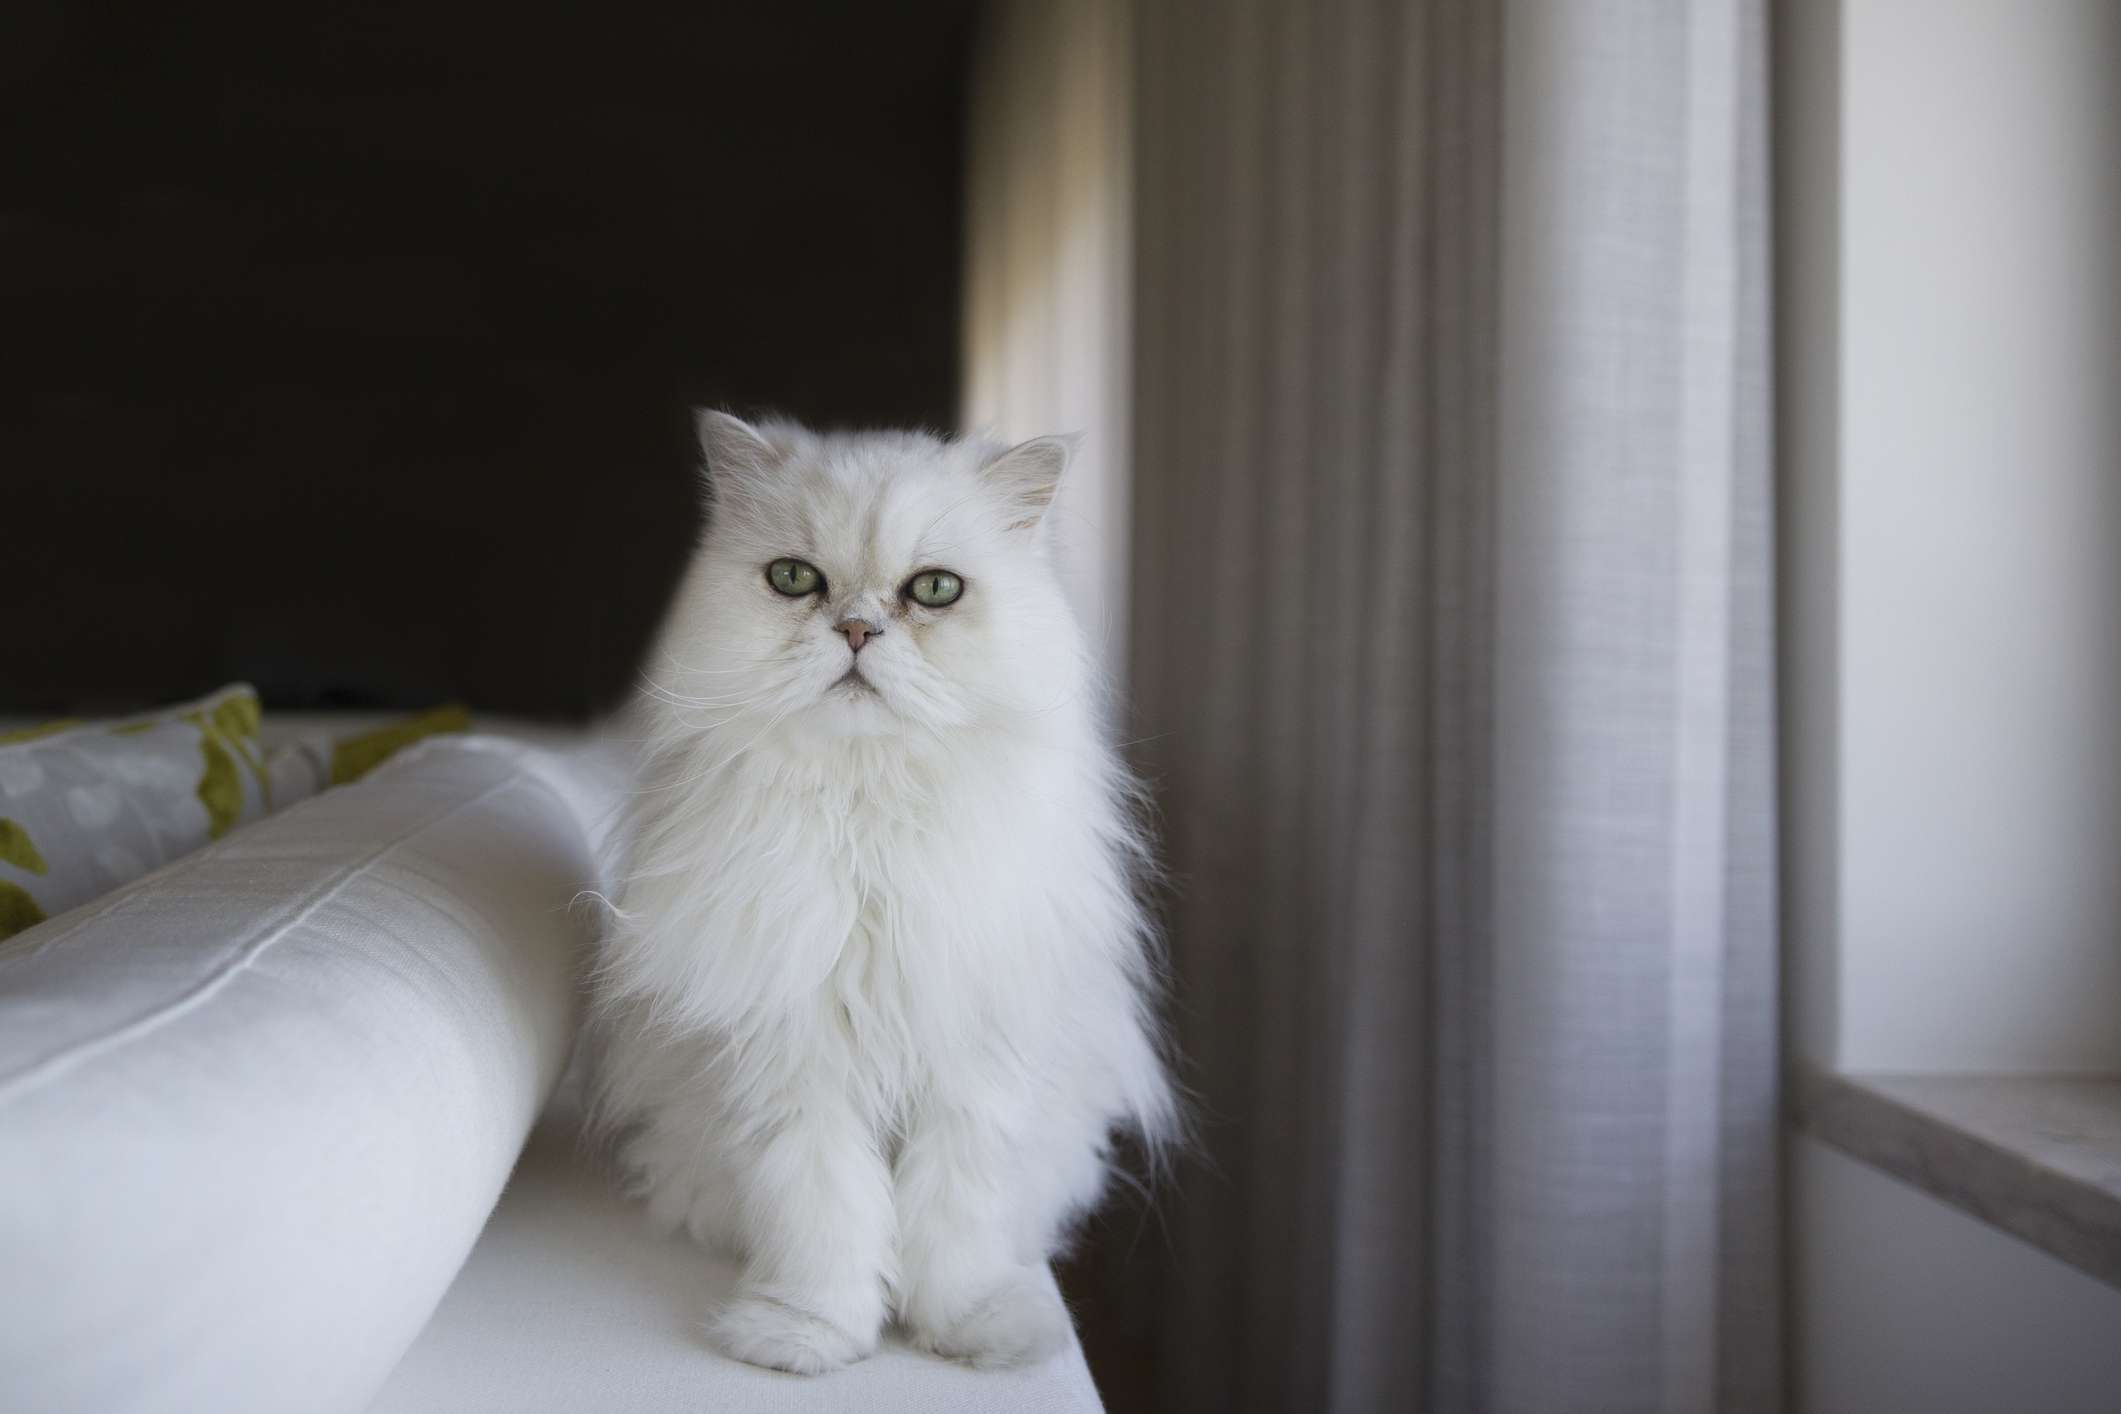 A white, fluffy Persian cat sitting on the end of a white couch.